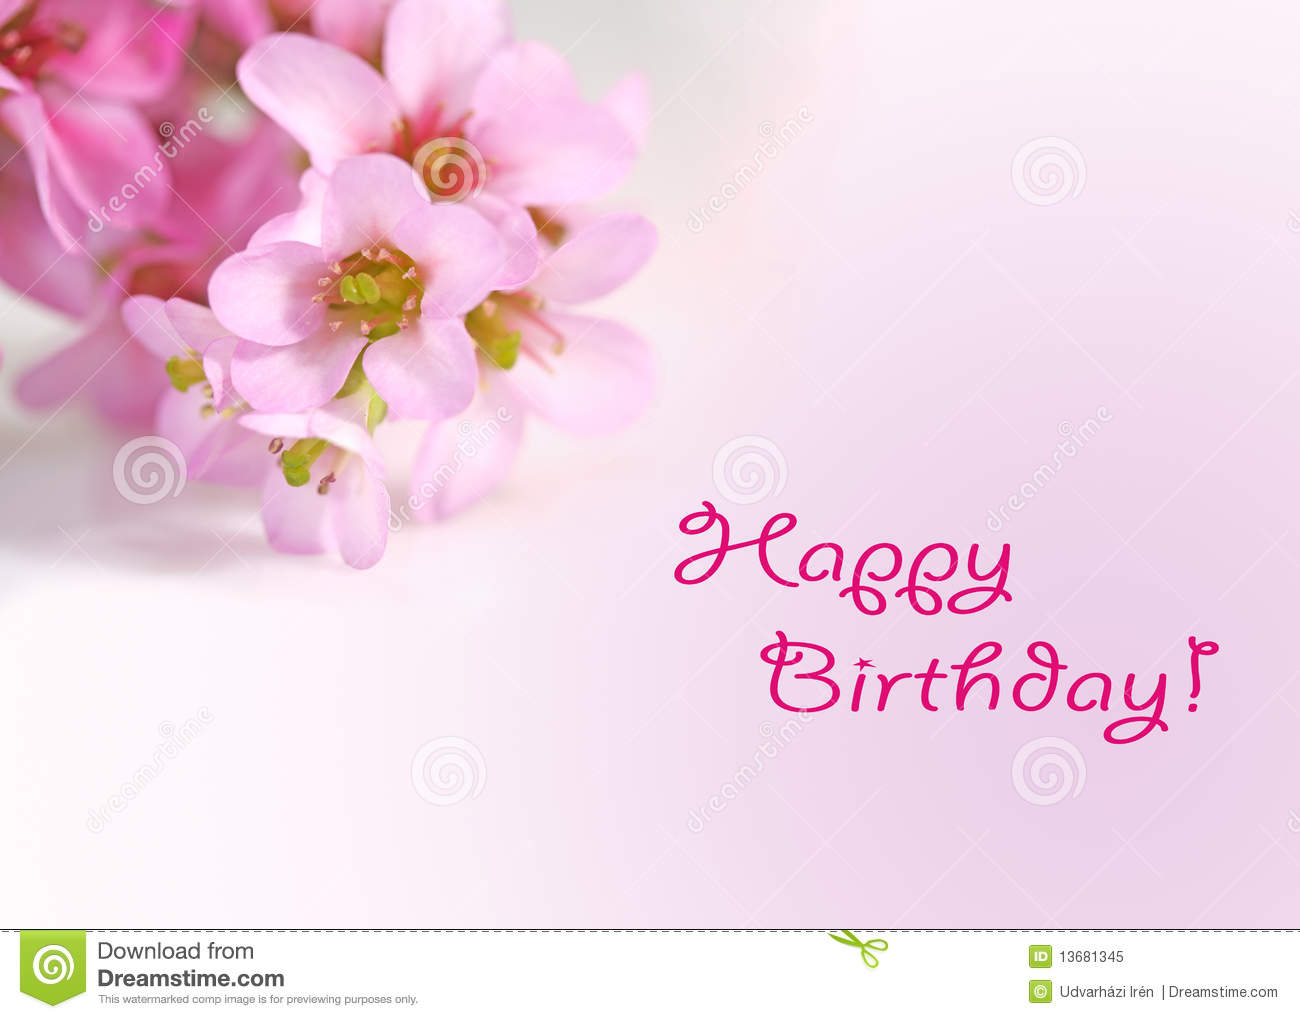 Happy birthday greetings card with flowers stock image image of happy birthday greetings card with flowers izmirmasajfo Choice Image